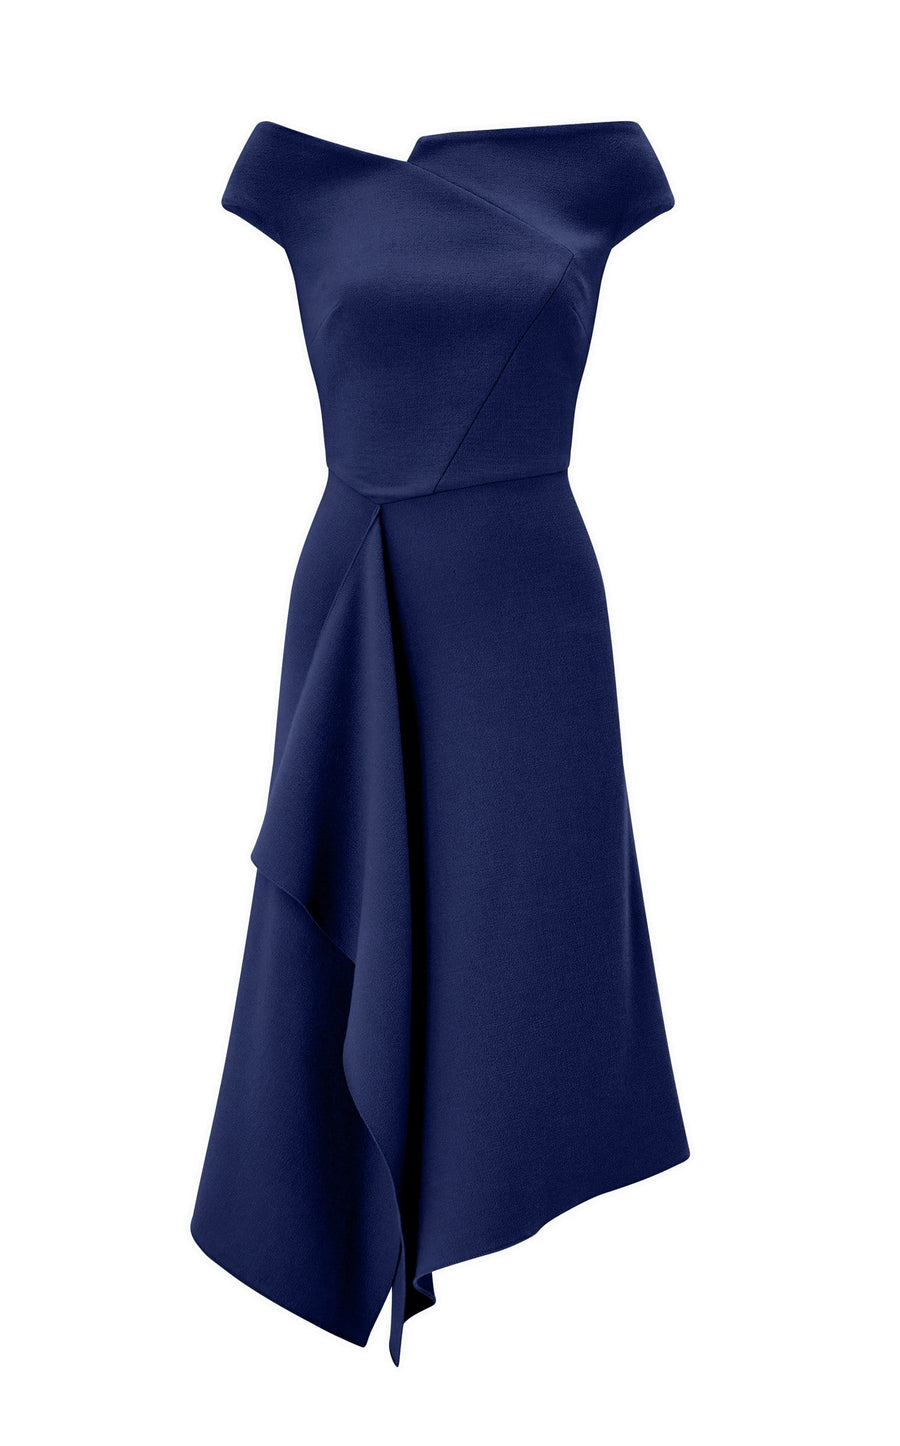 Barwick Dress In Navy from Roland Mouret